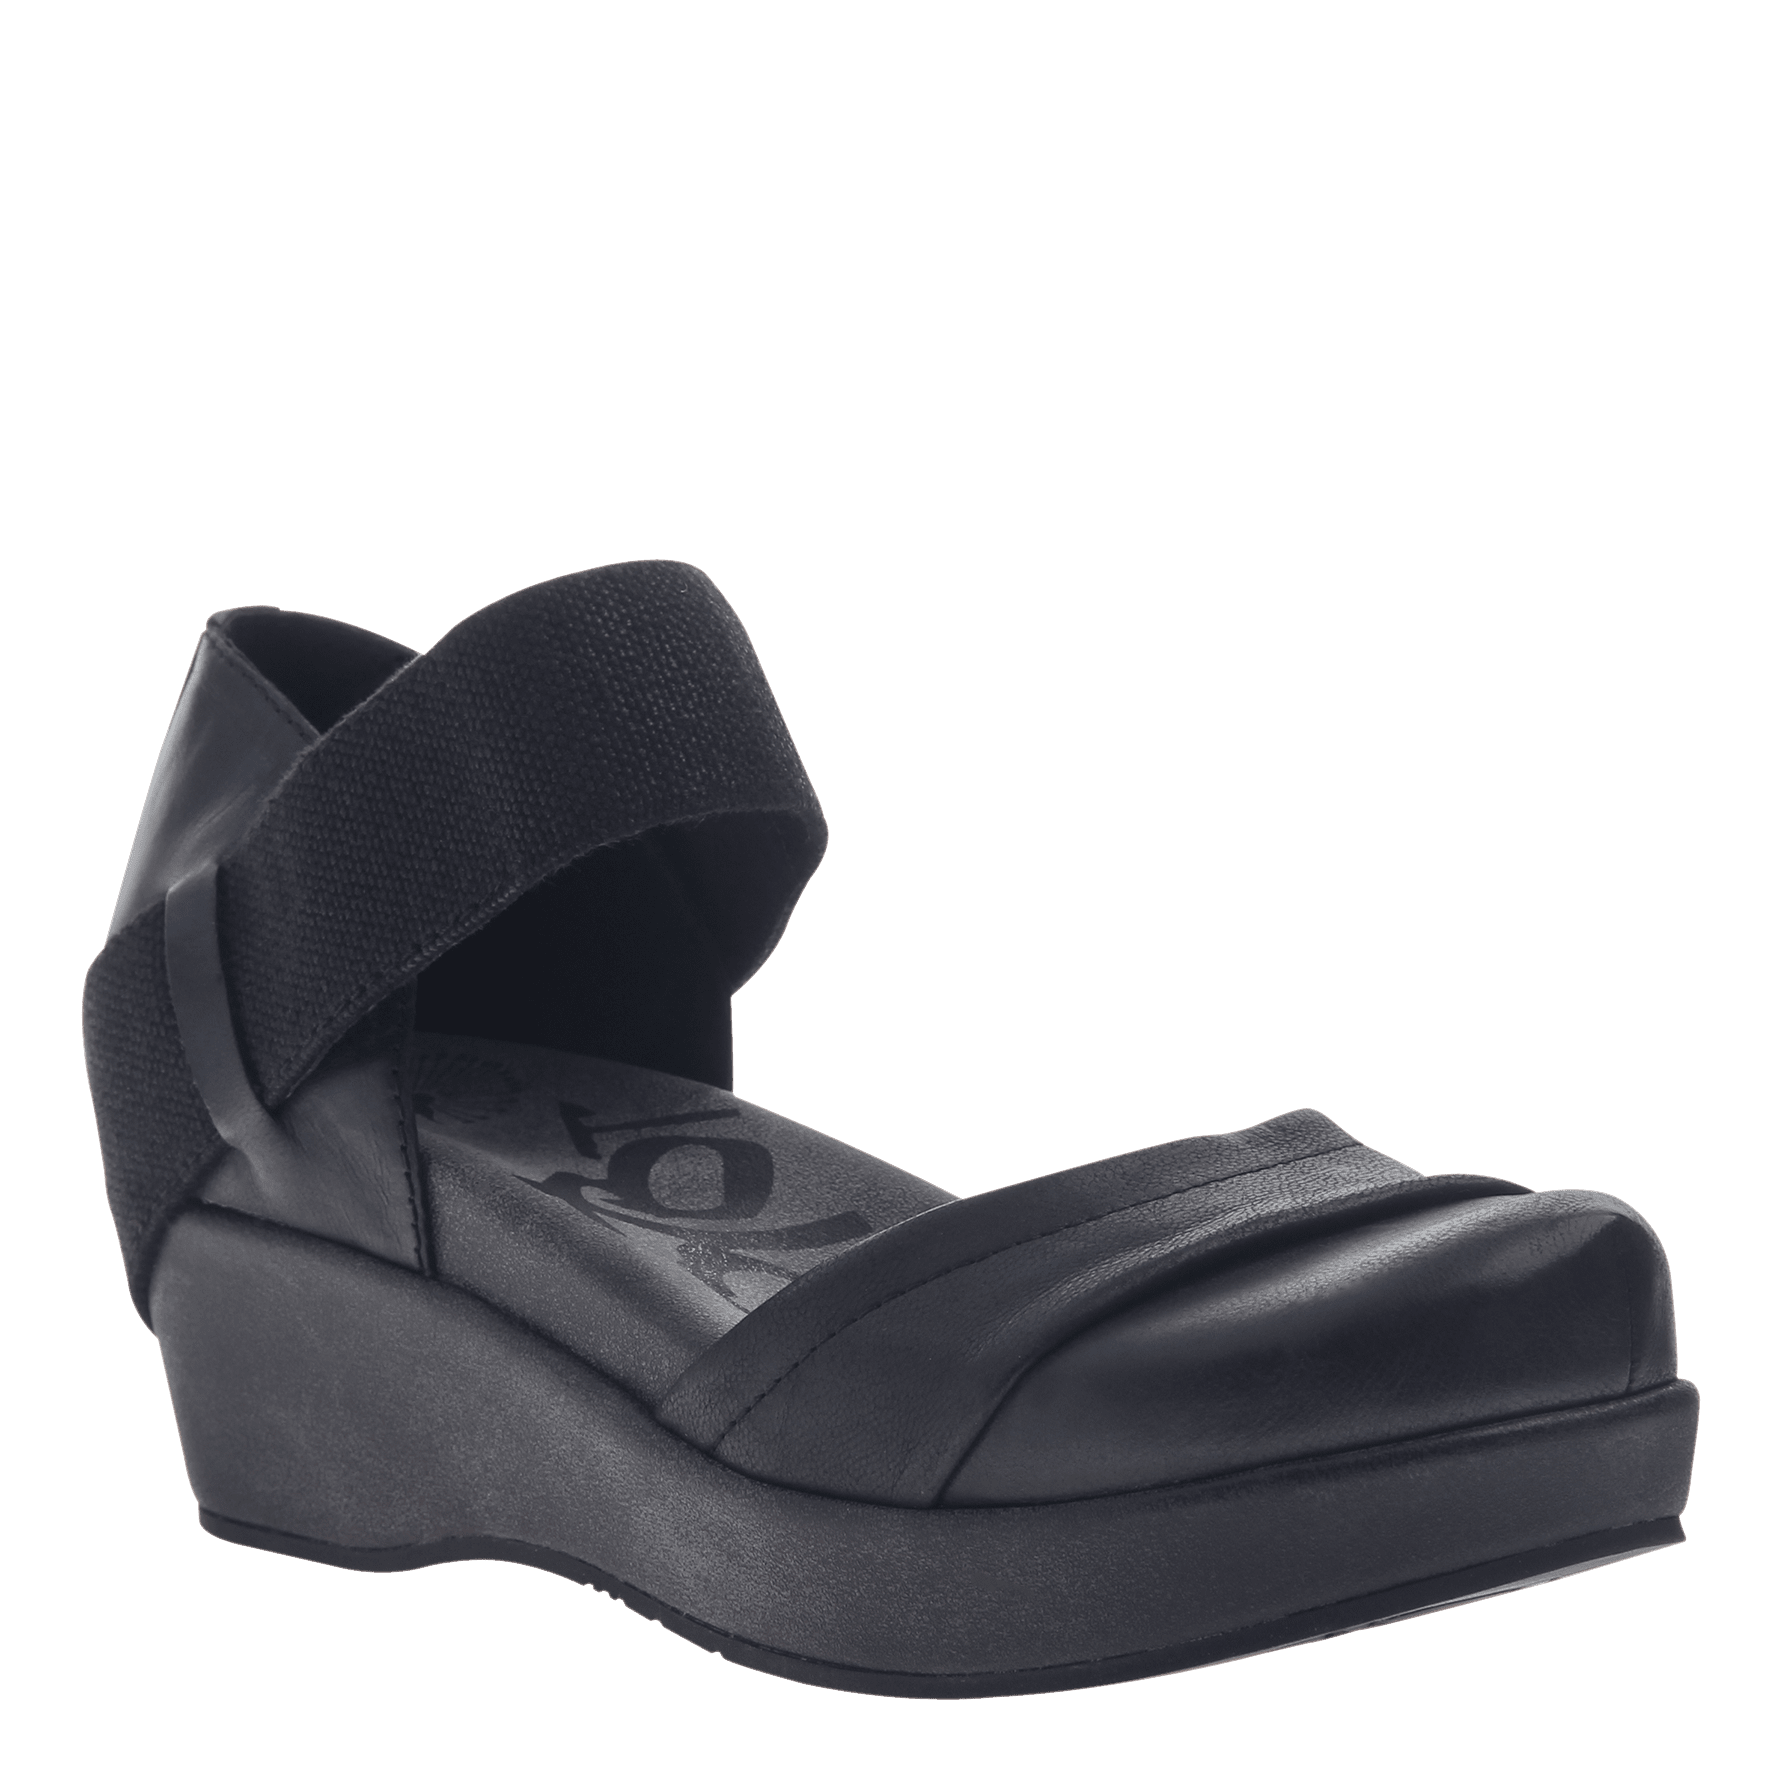 90884861a30 WANDER OUT in BLACK Closed Toe Wedges